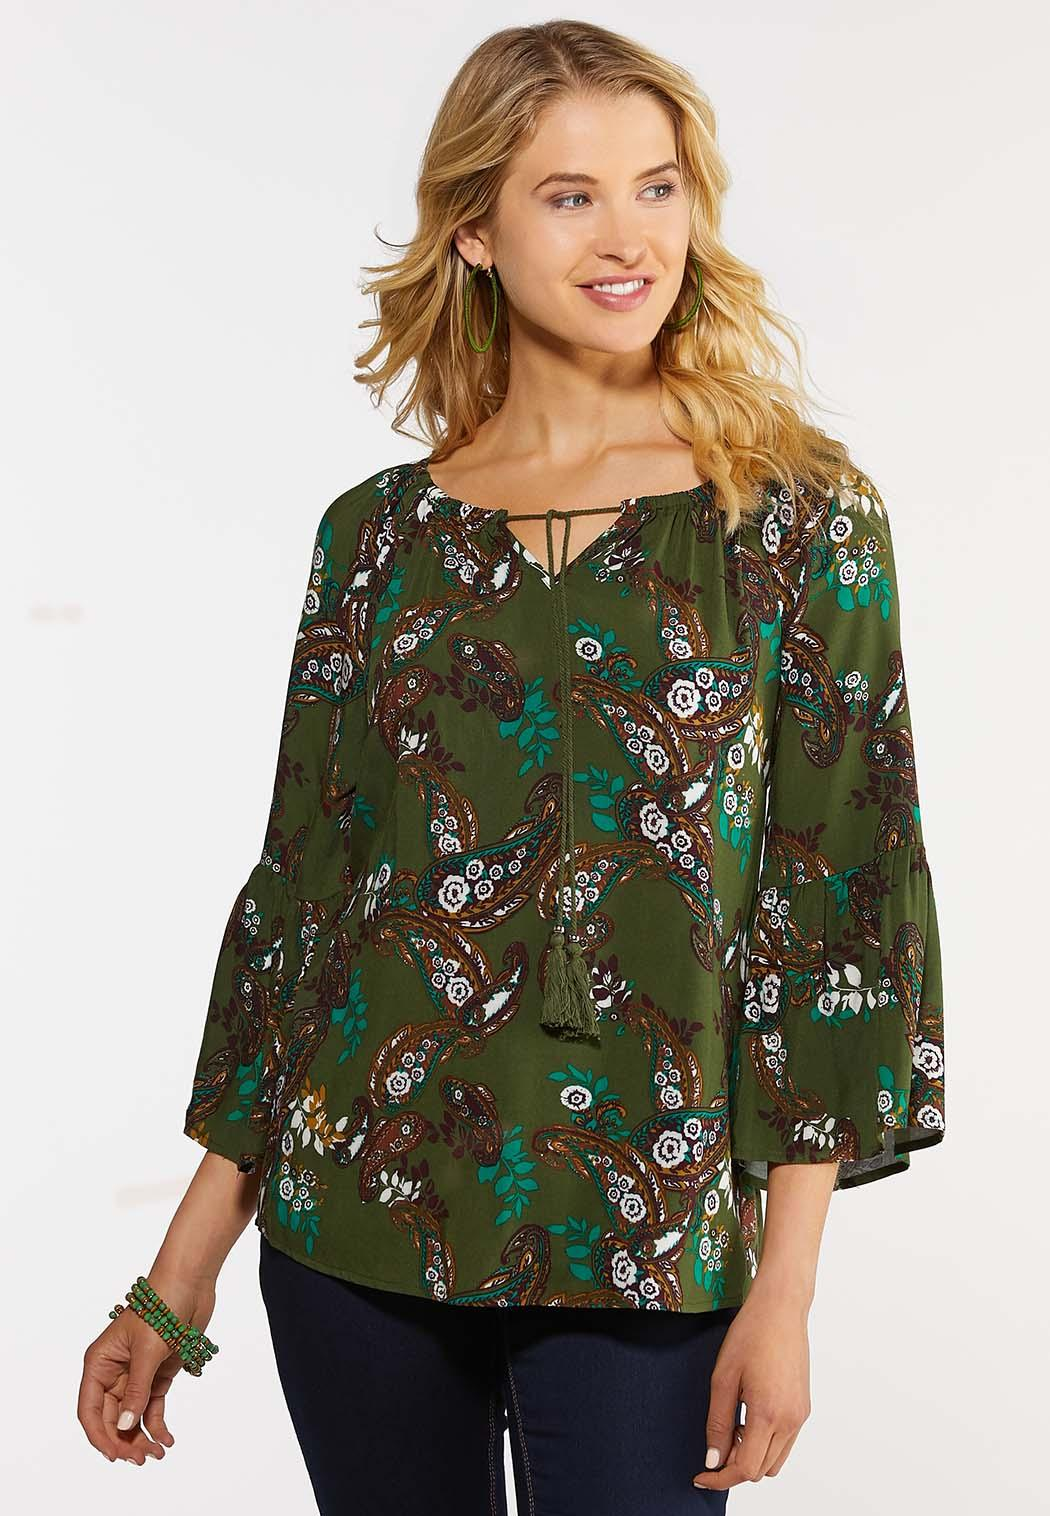 Olive Floral Paisley Top